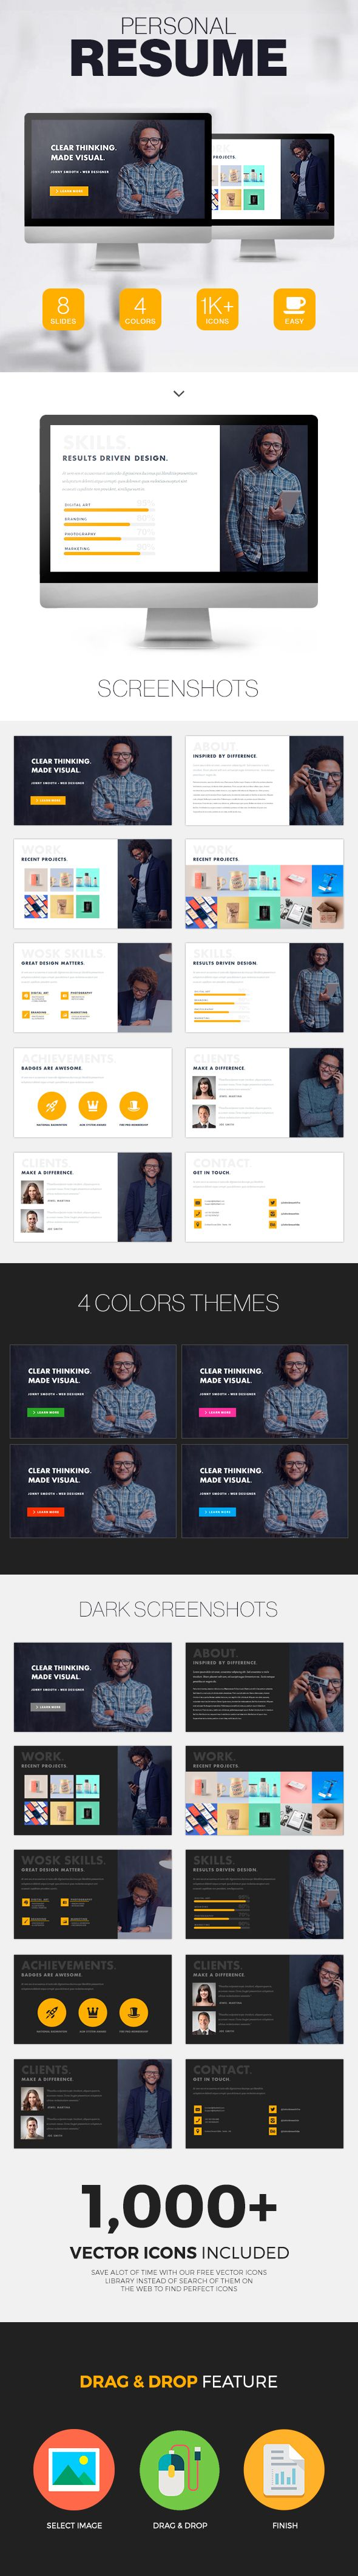 Personal Resume - Powerpoint Presentation | Powerpoint Templates